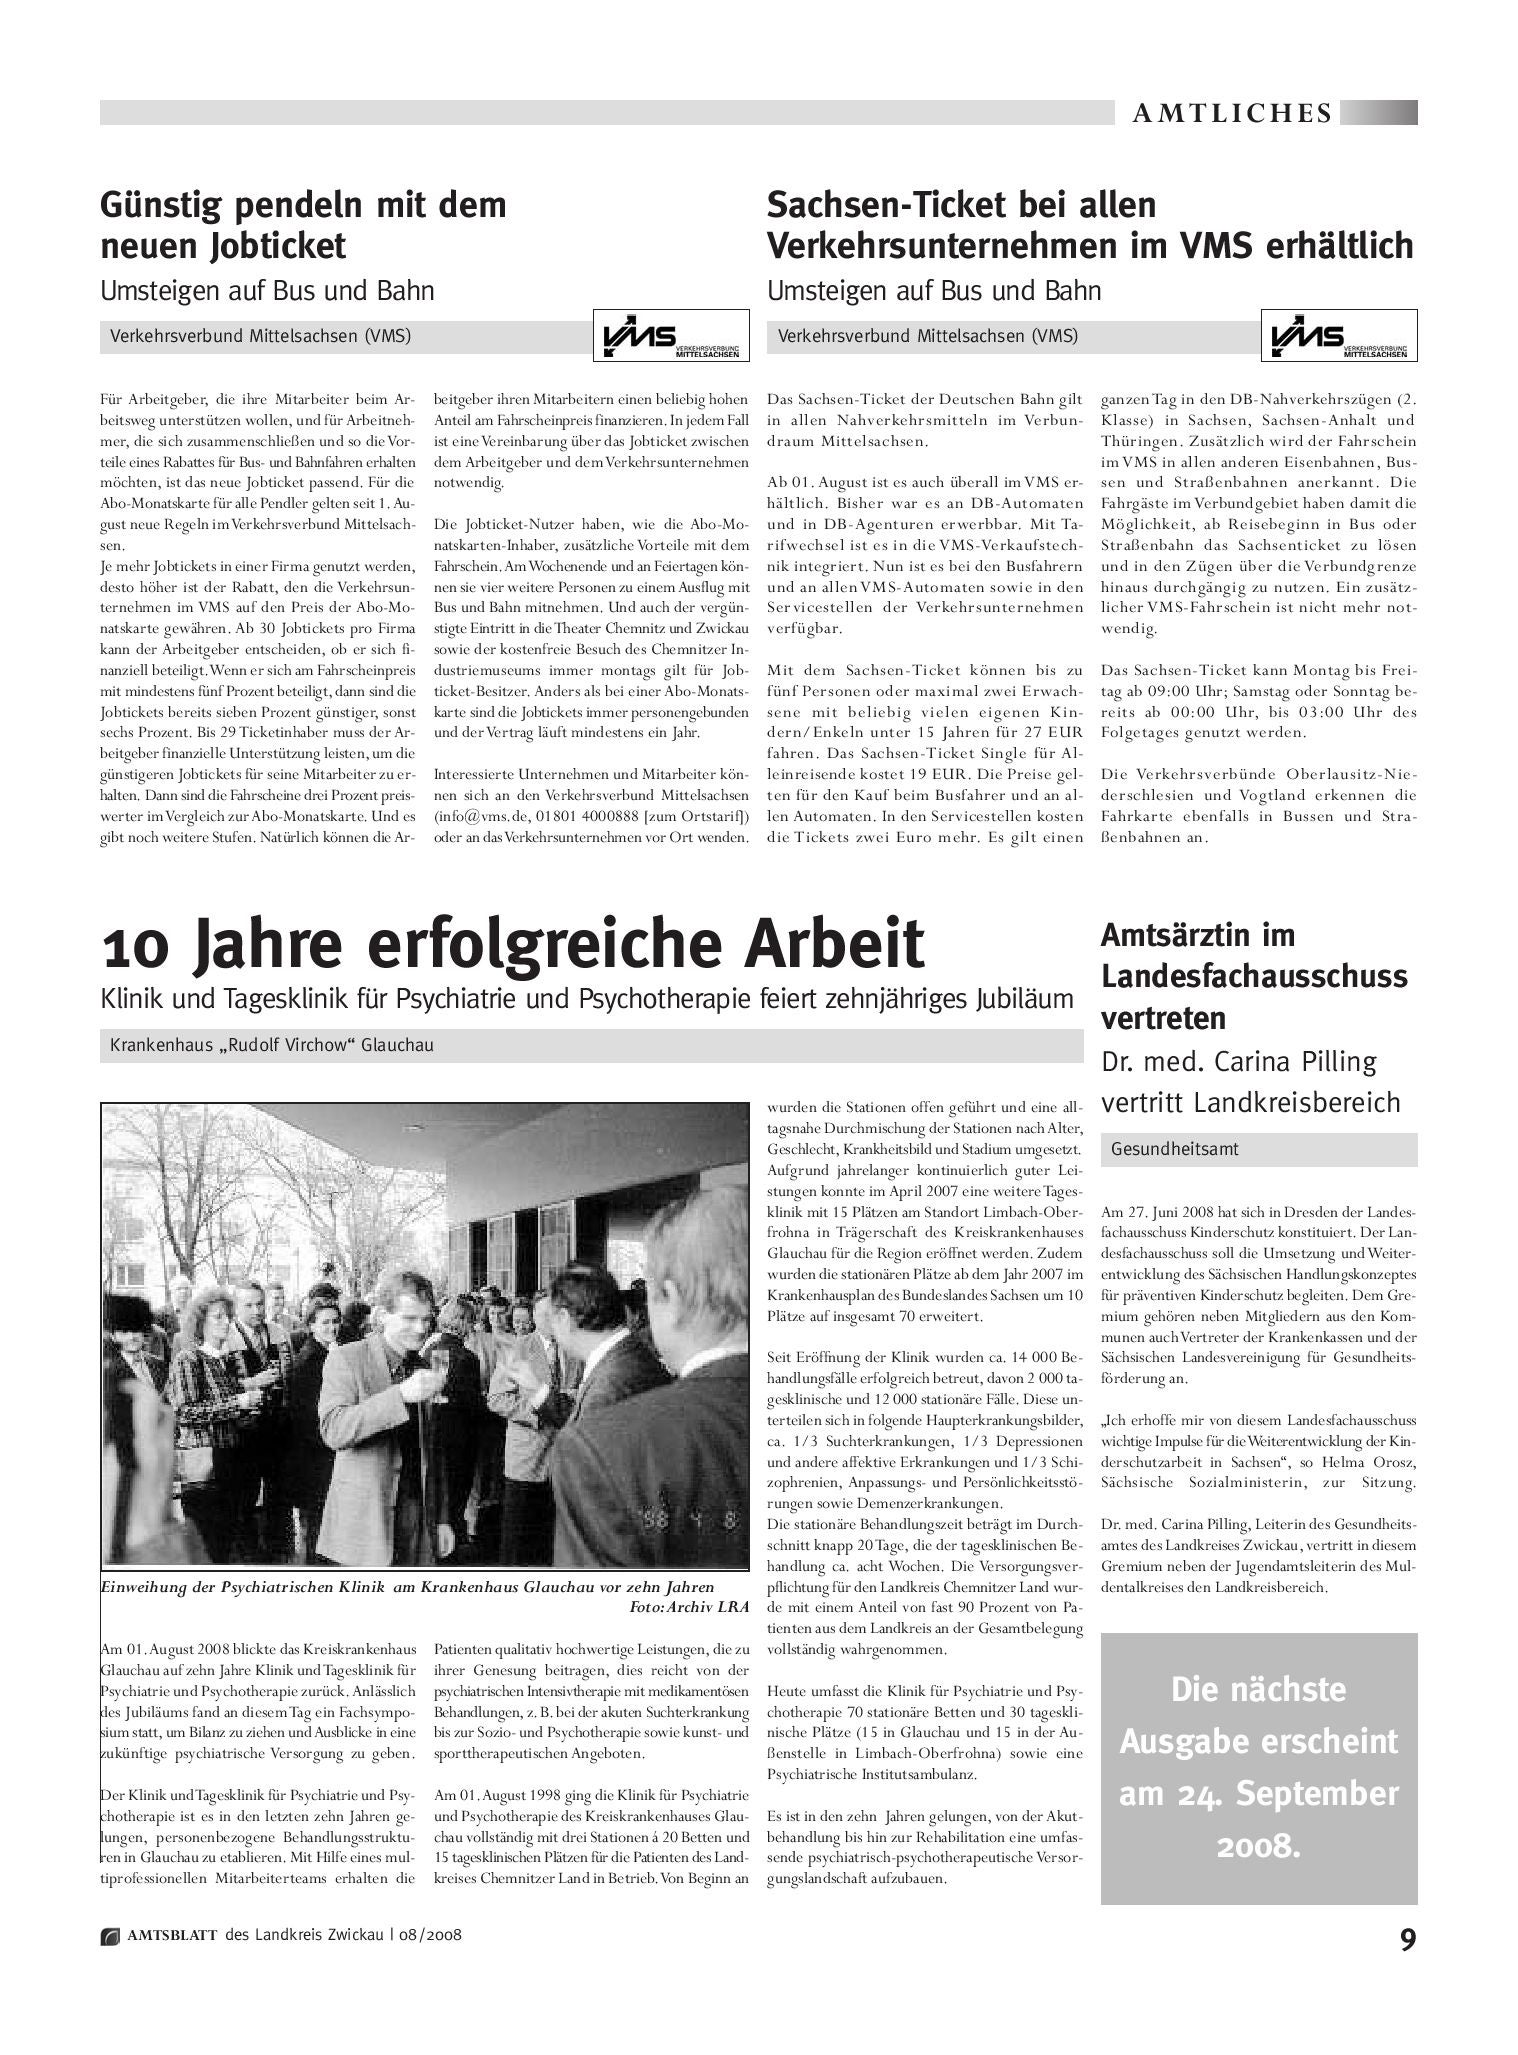 much necessary. Earlier Single Frauen Limbach-Oberfrohna kennenlernen discussion There are